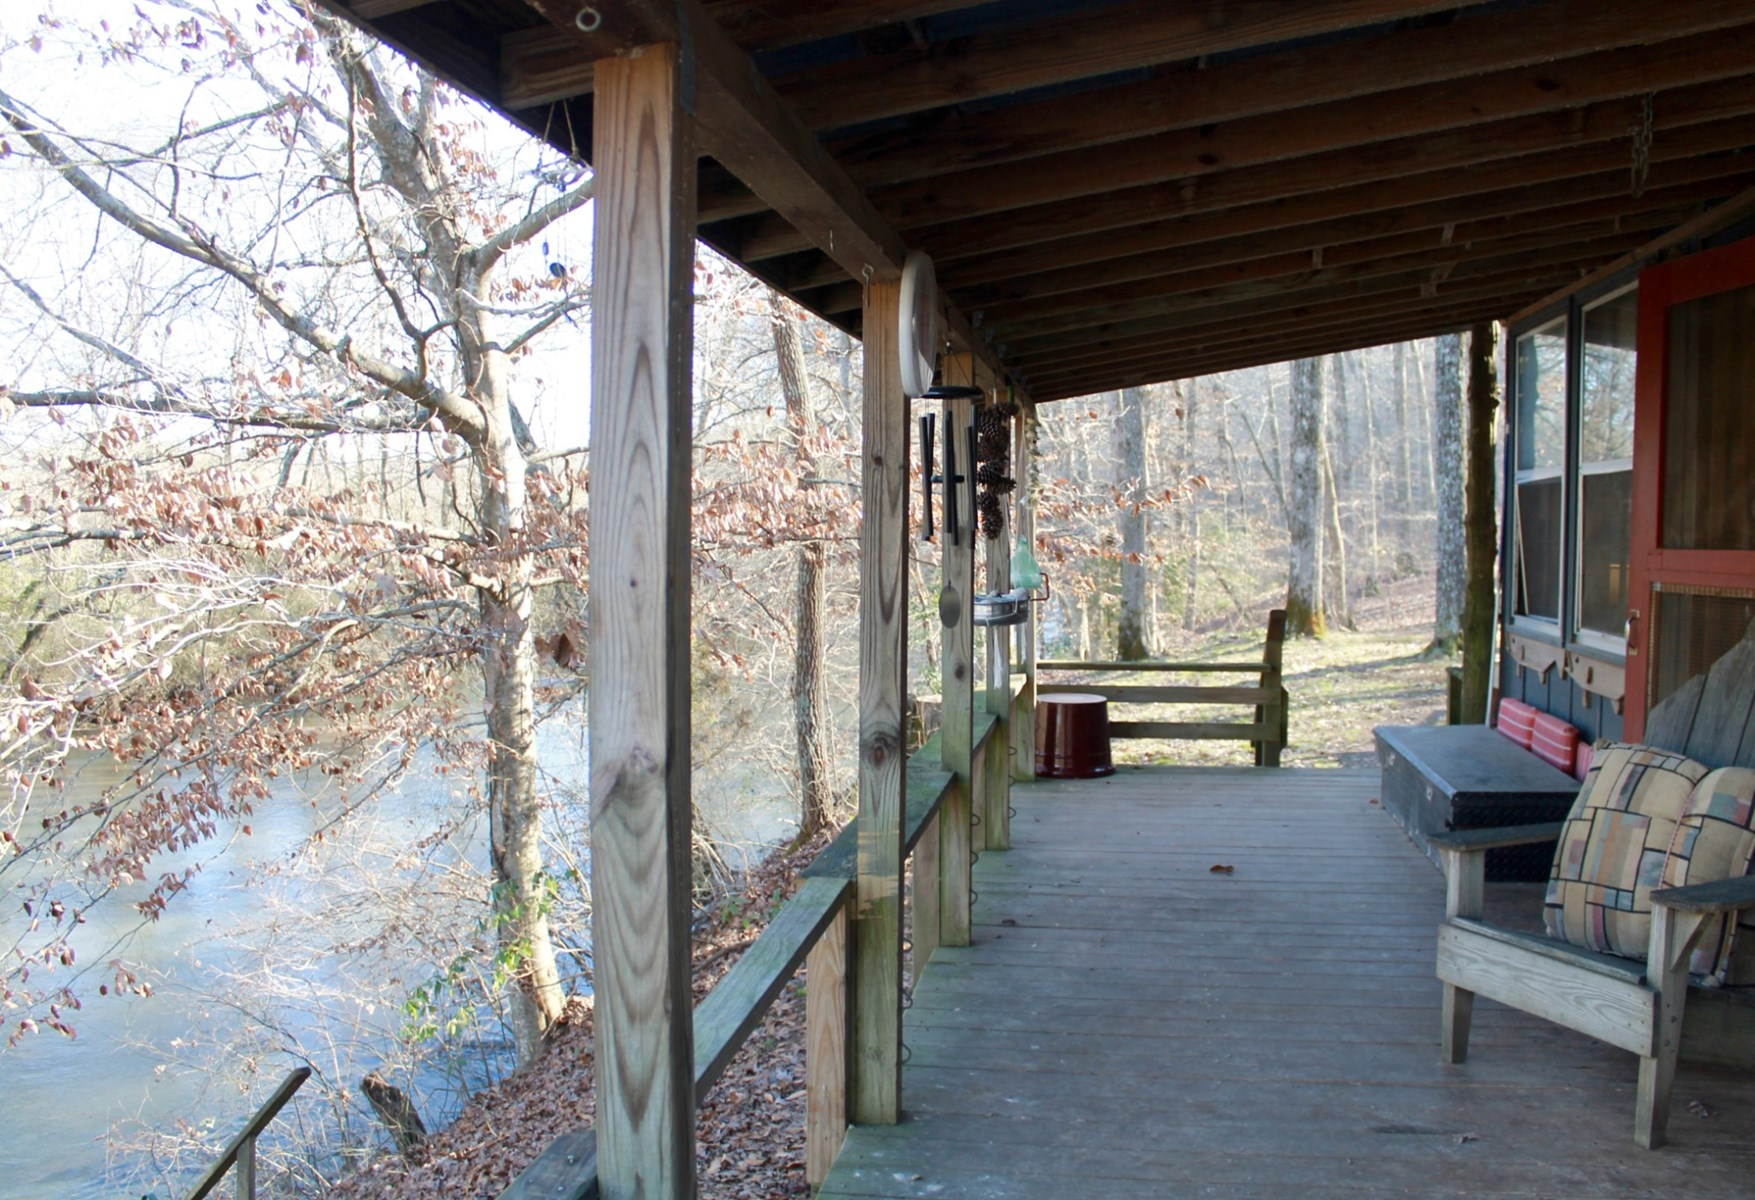 Cabin Located on the Buffalo River, in Hohenwald, Tennessee